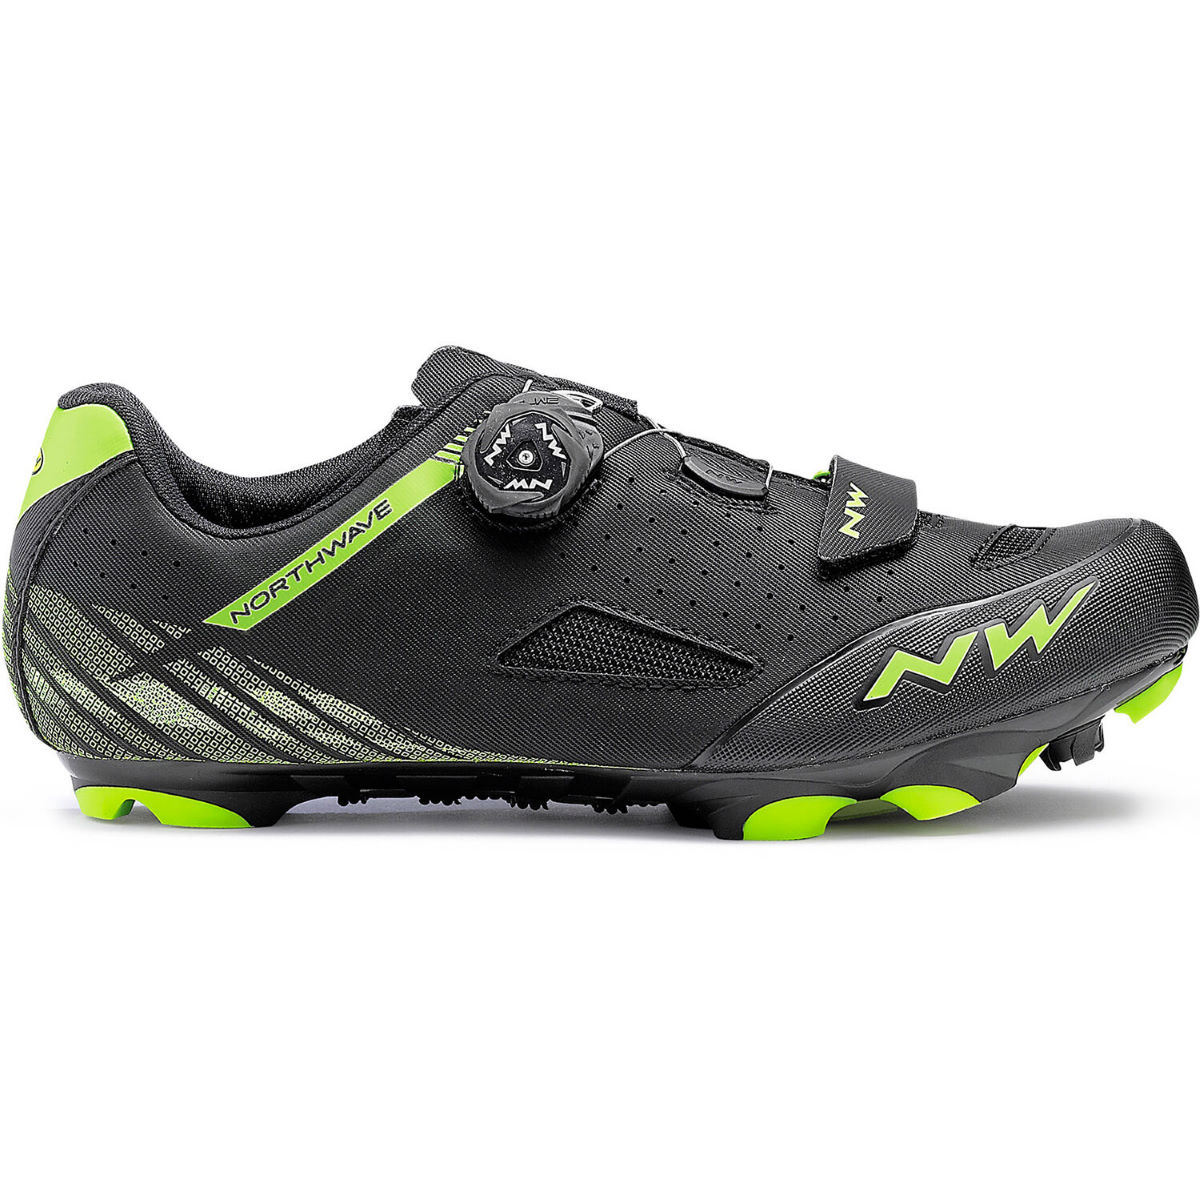 Northwave Northwave Origin Plus MTB Shoes   Cycling Shoes